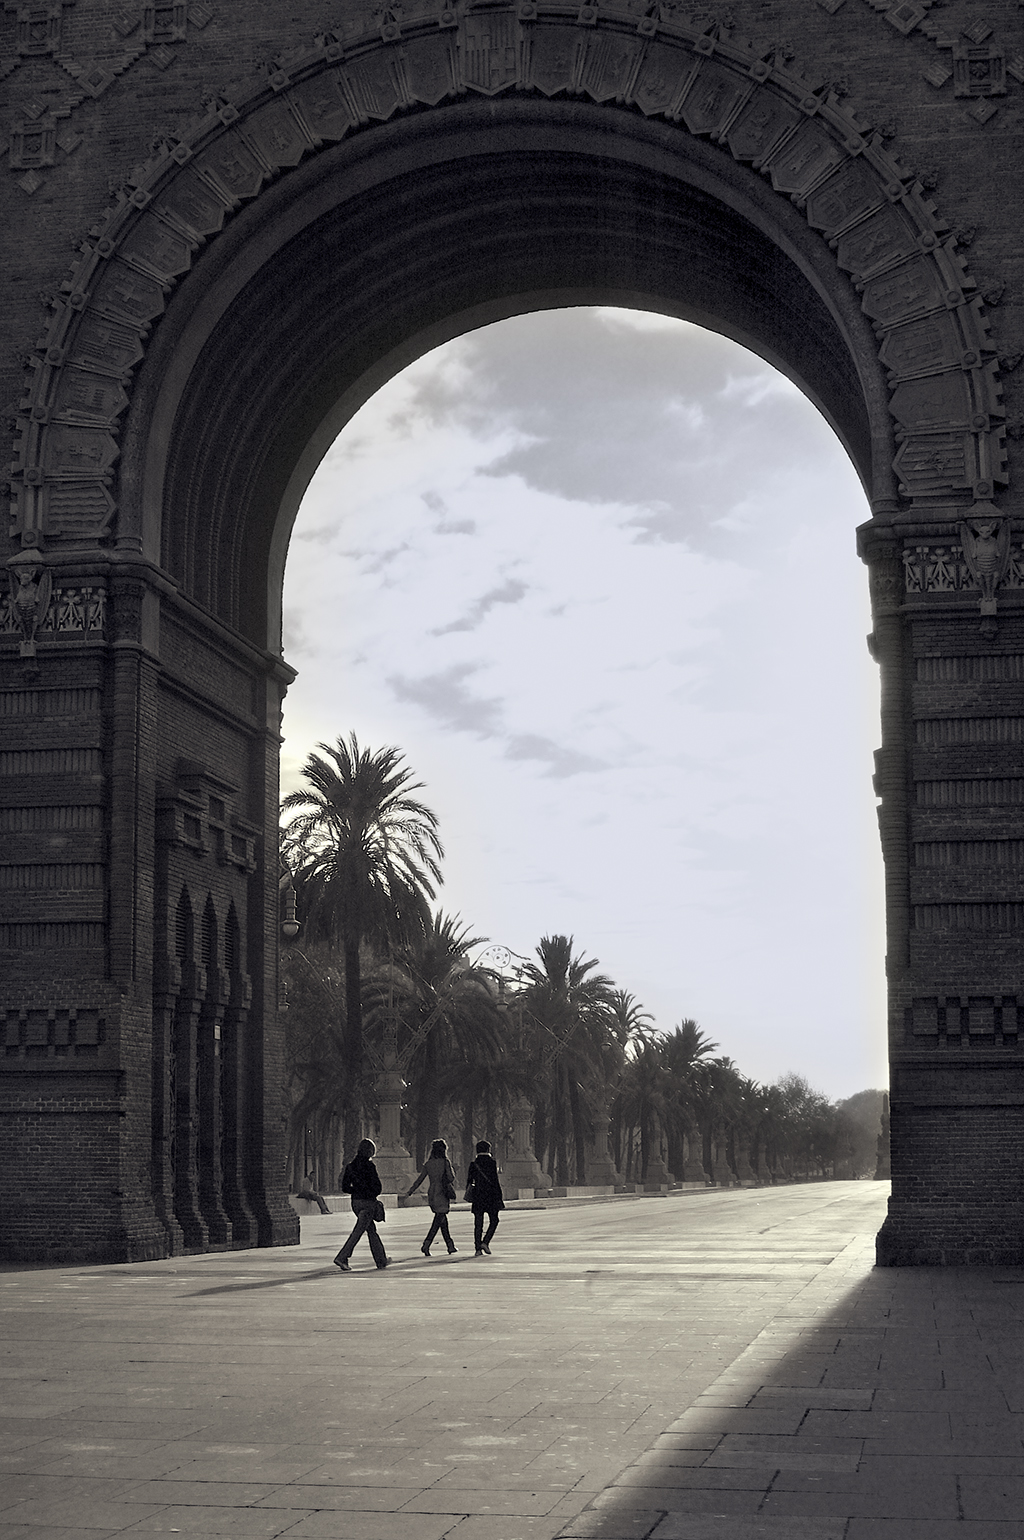 Under The Arc de Triomf [enlarge]